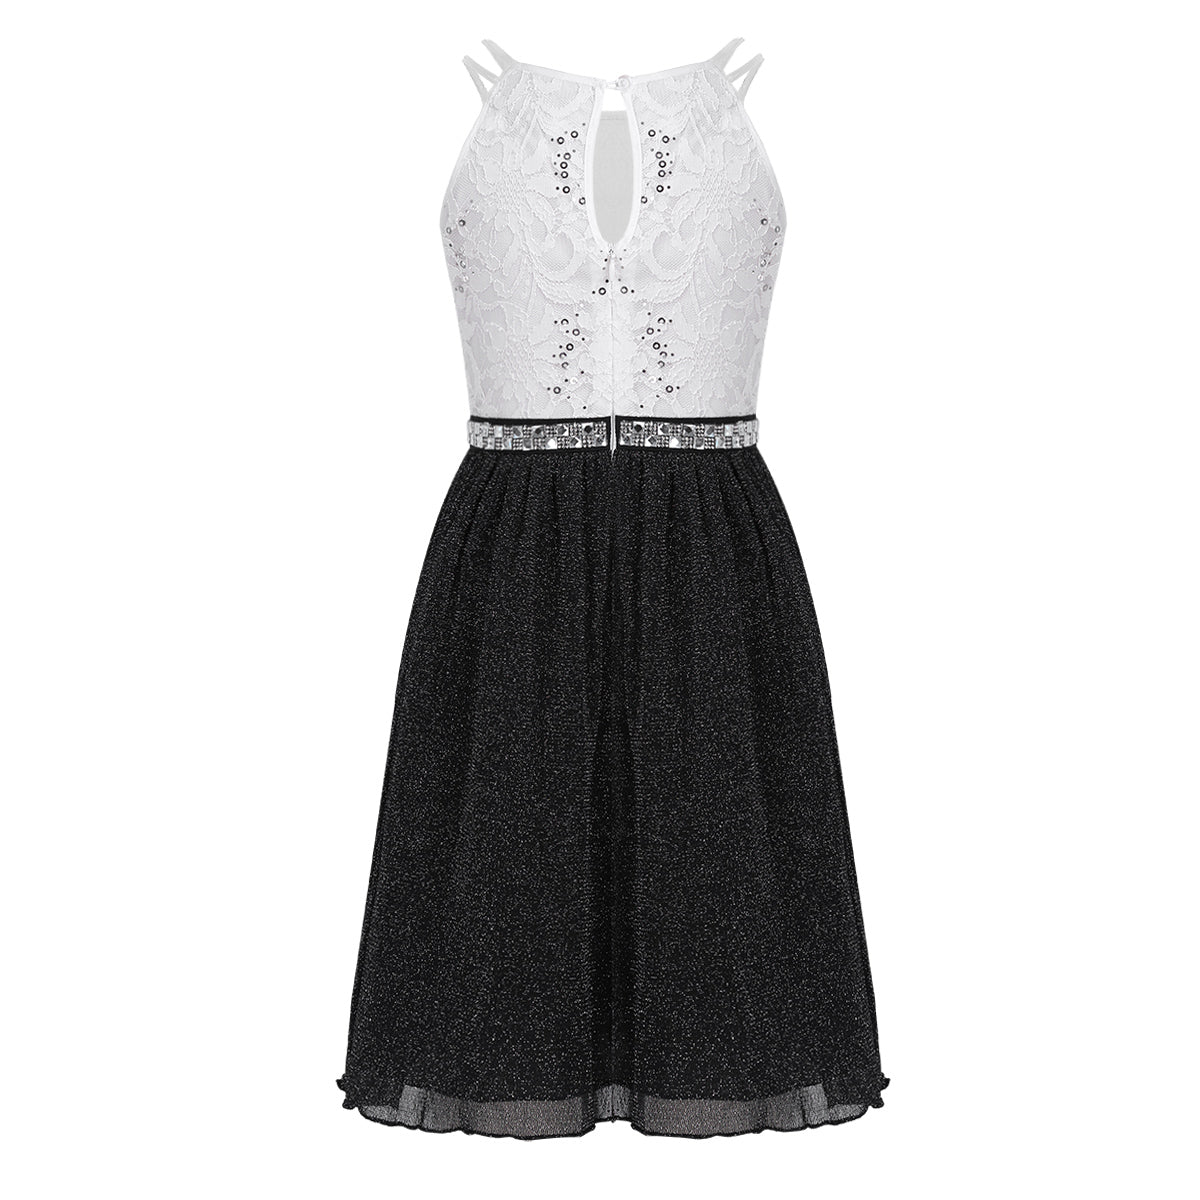 Cute Party Dresses For 12 Year Olds Fabulous Bargains Galore